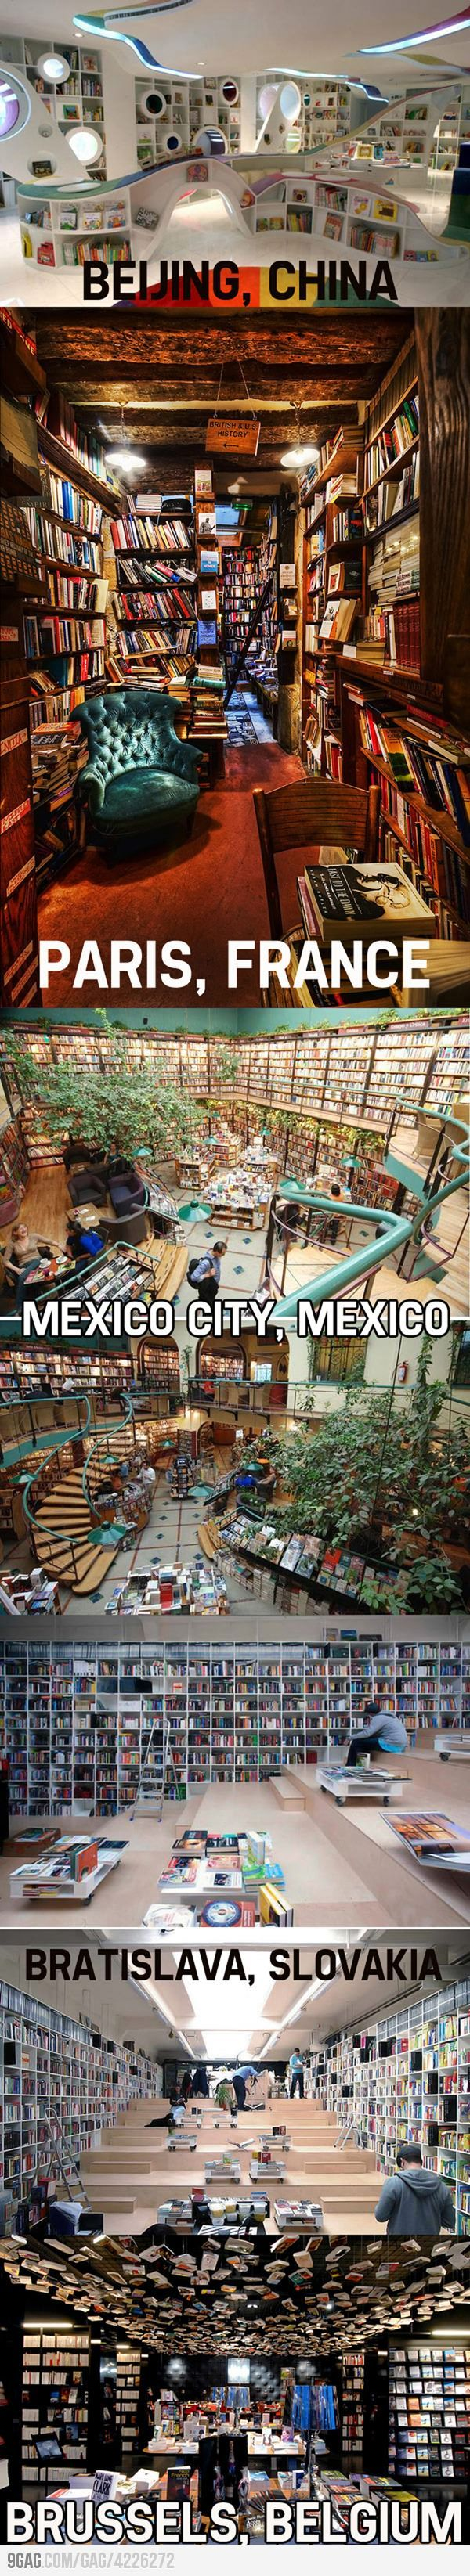 Awesome bookstores from around the world. If I had a bucket list, this would be on it.